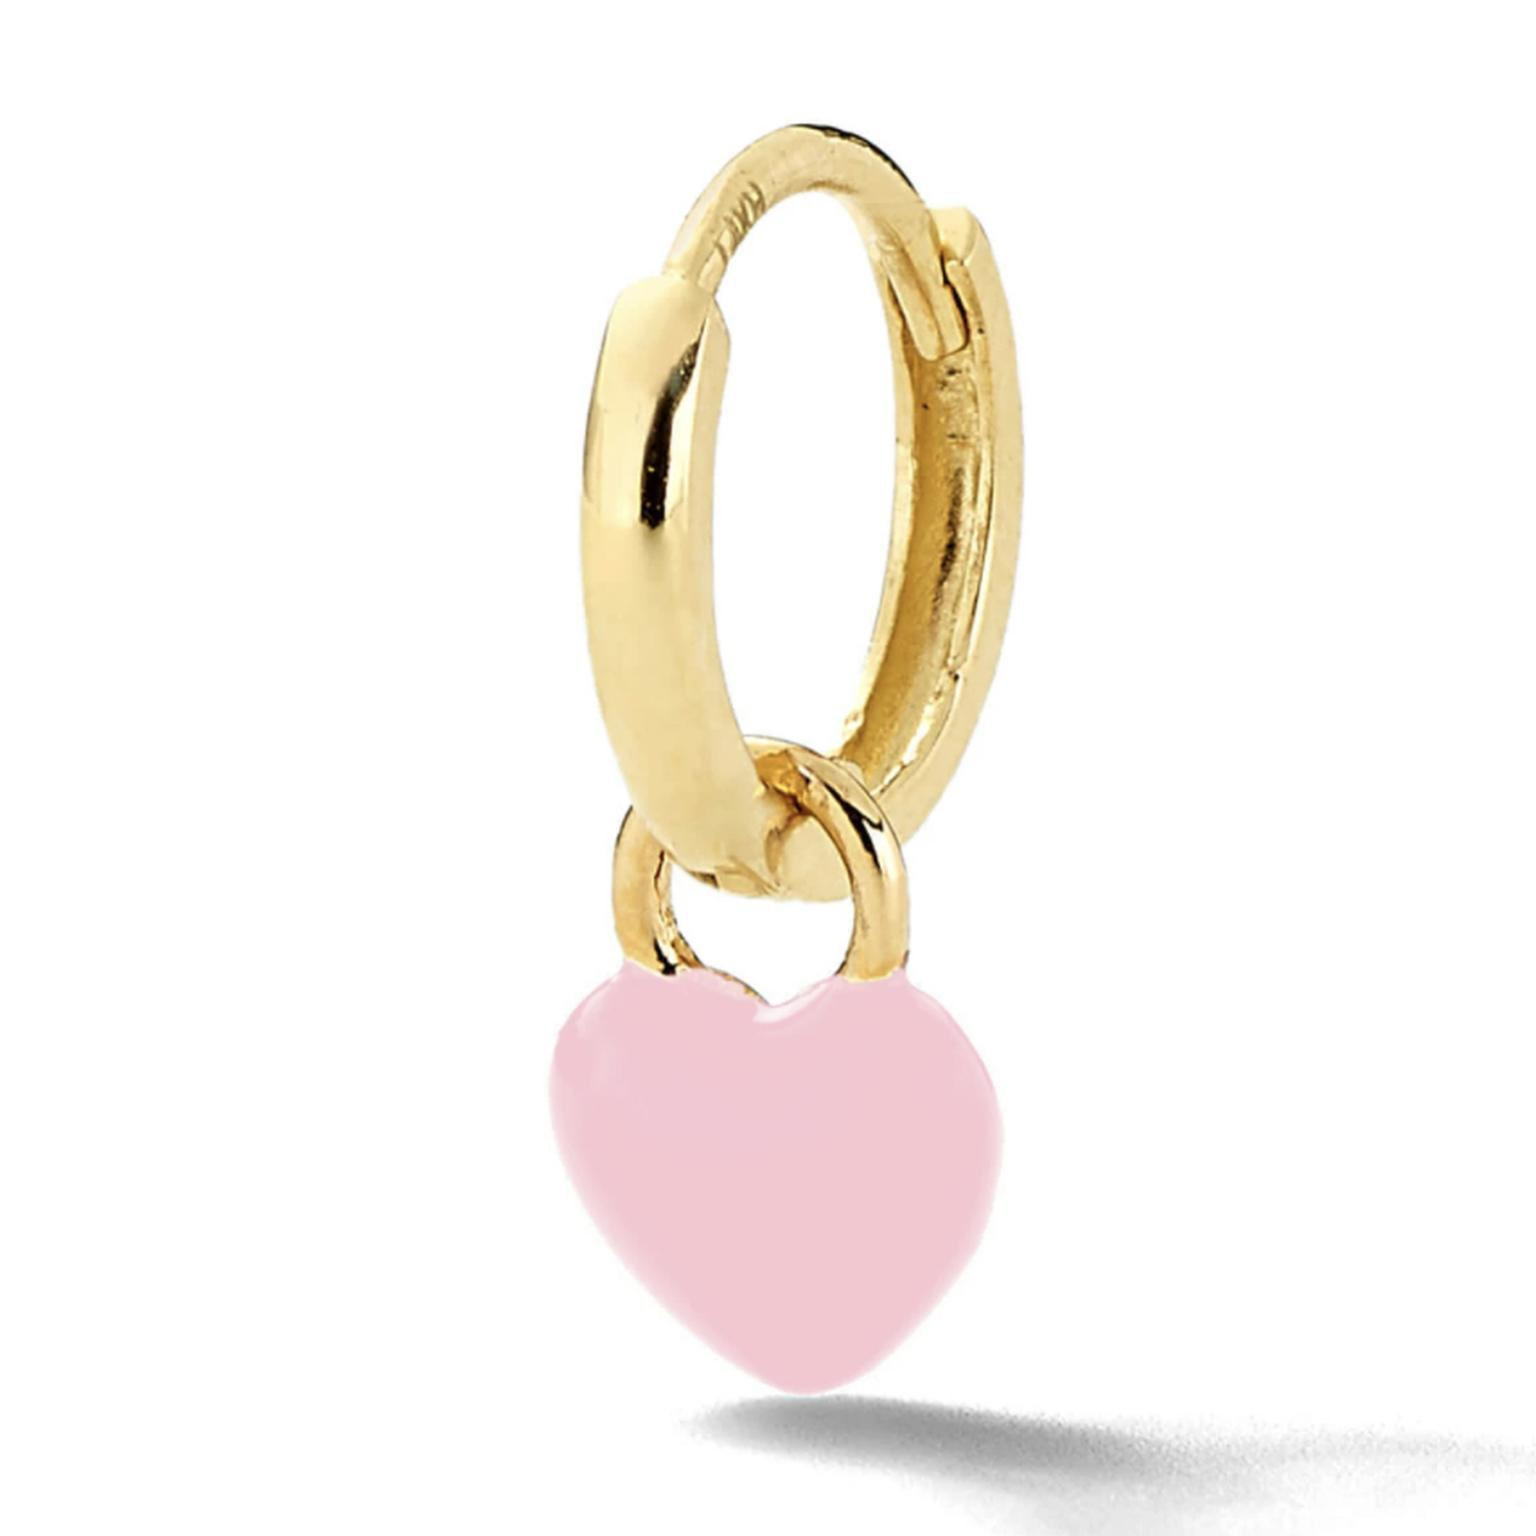 Heart enamel single earring by Alison Lou